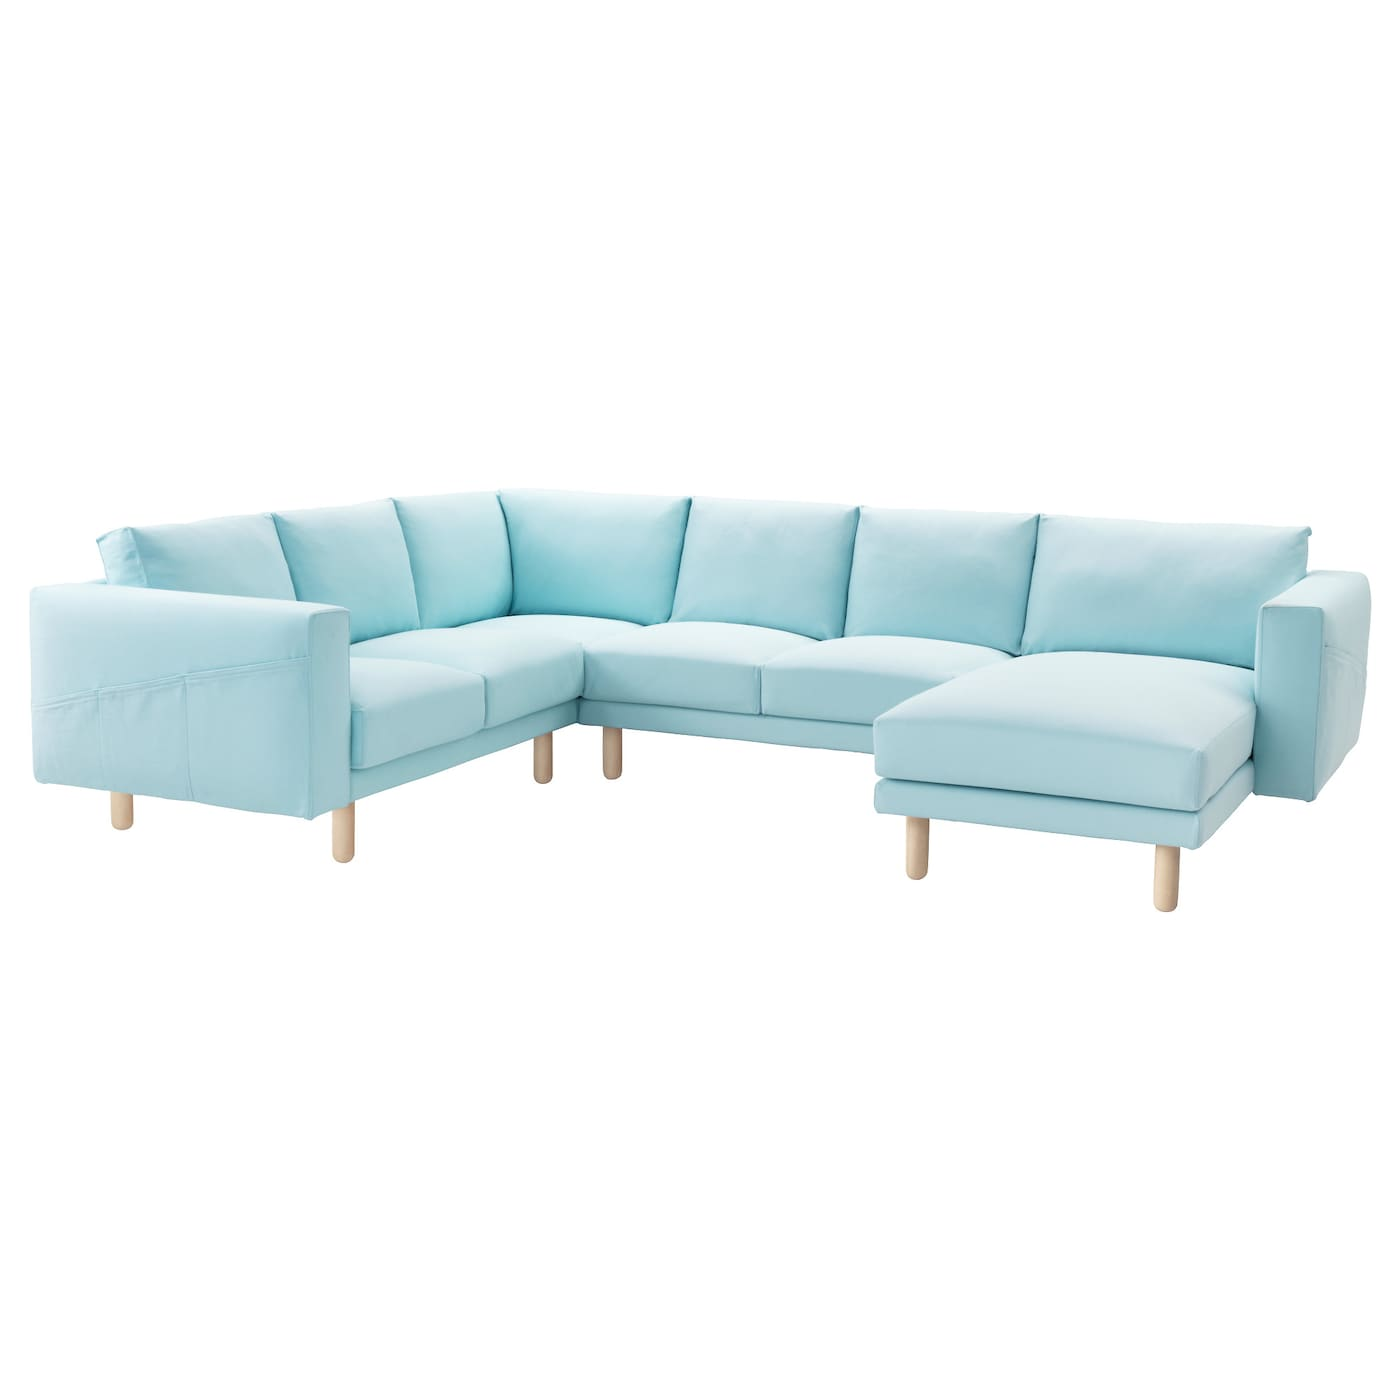 norsborg corner sofa 2 2 with chaise longue gr sbo light blue birch ikea. Black Bedroom Furniture Sets. Home Design Ideas